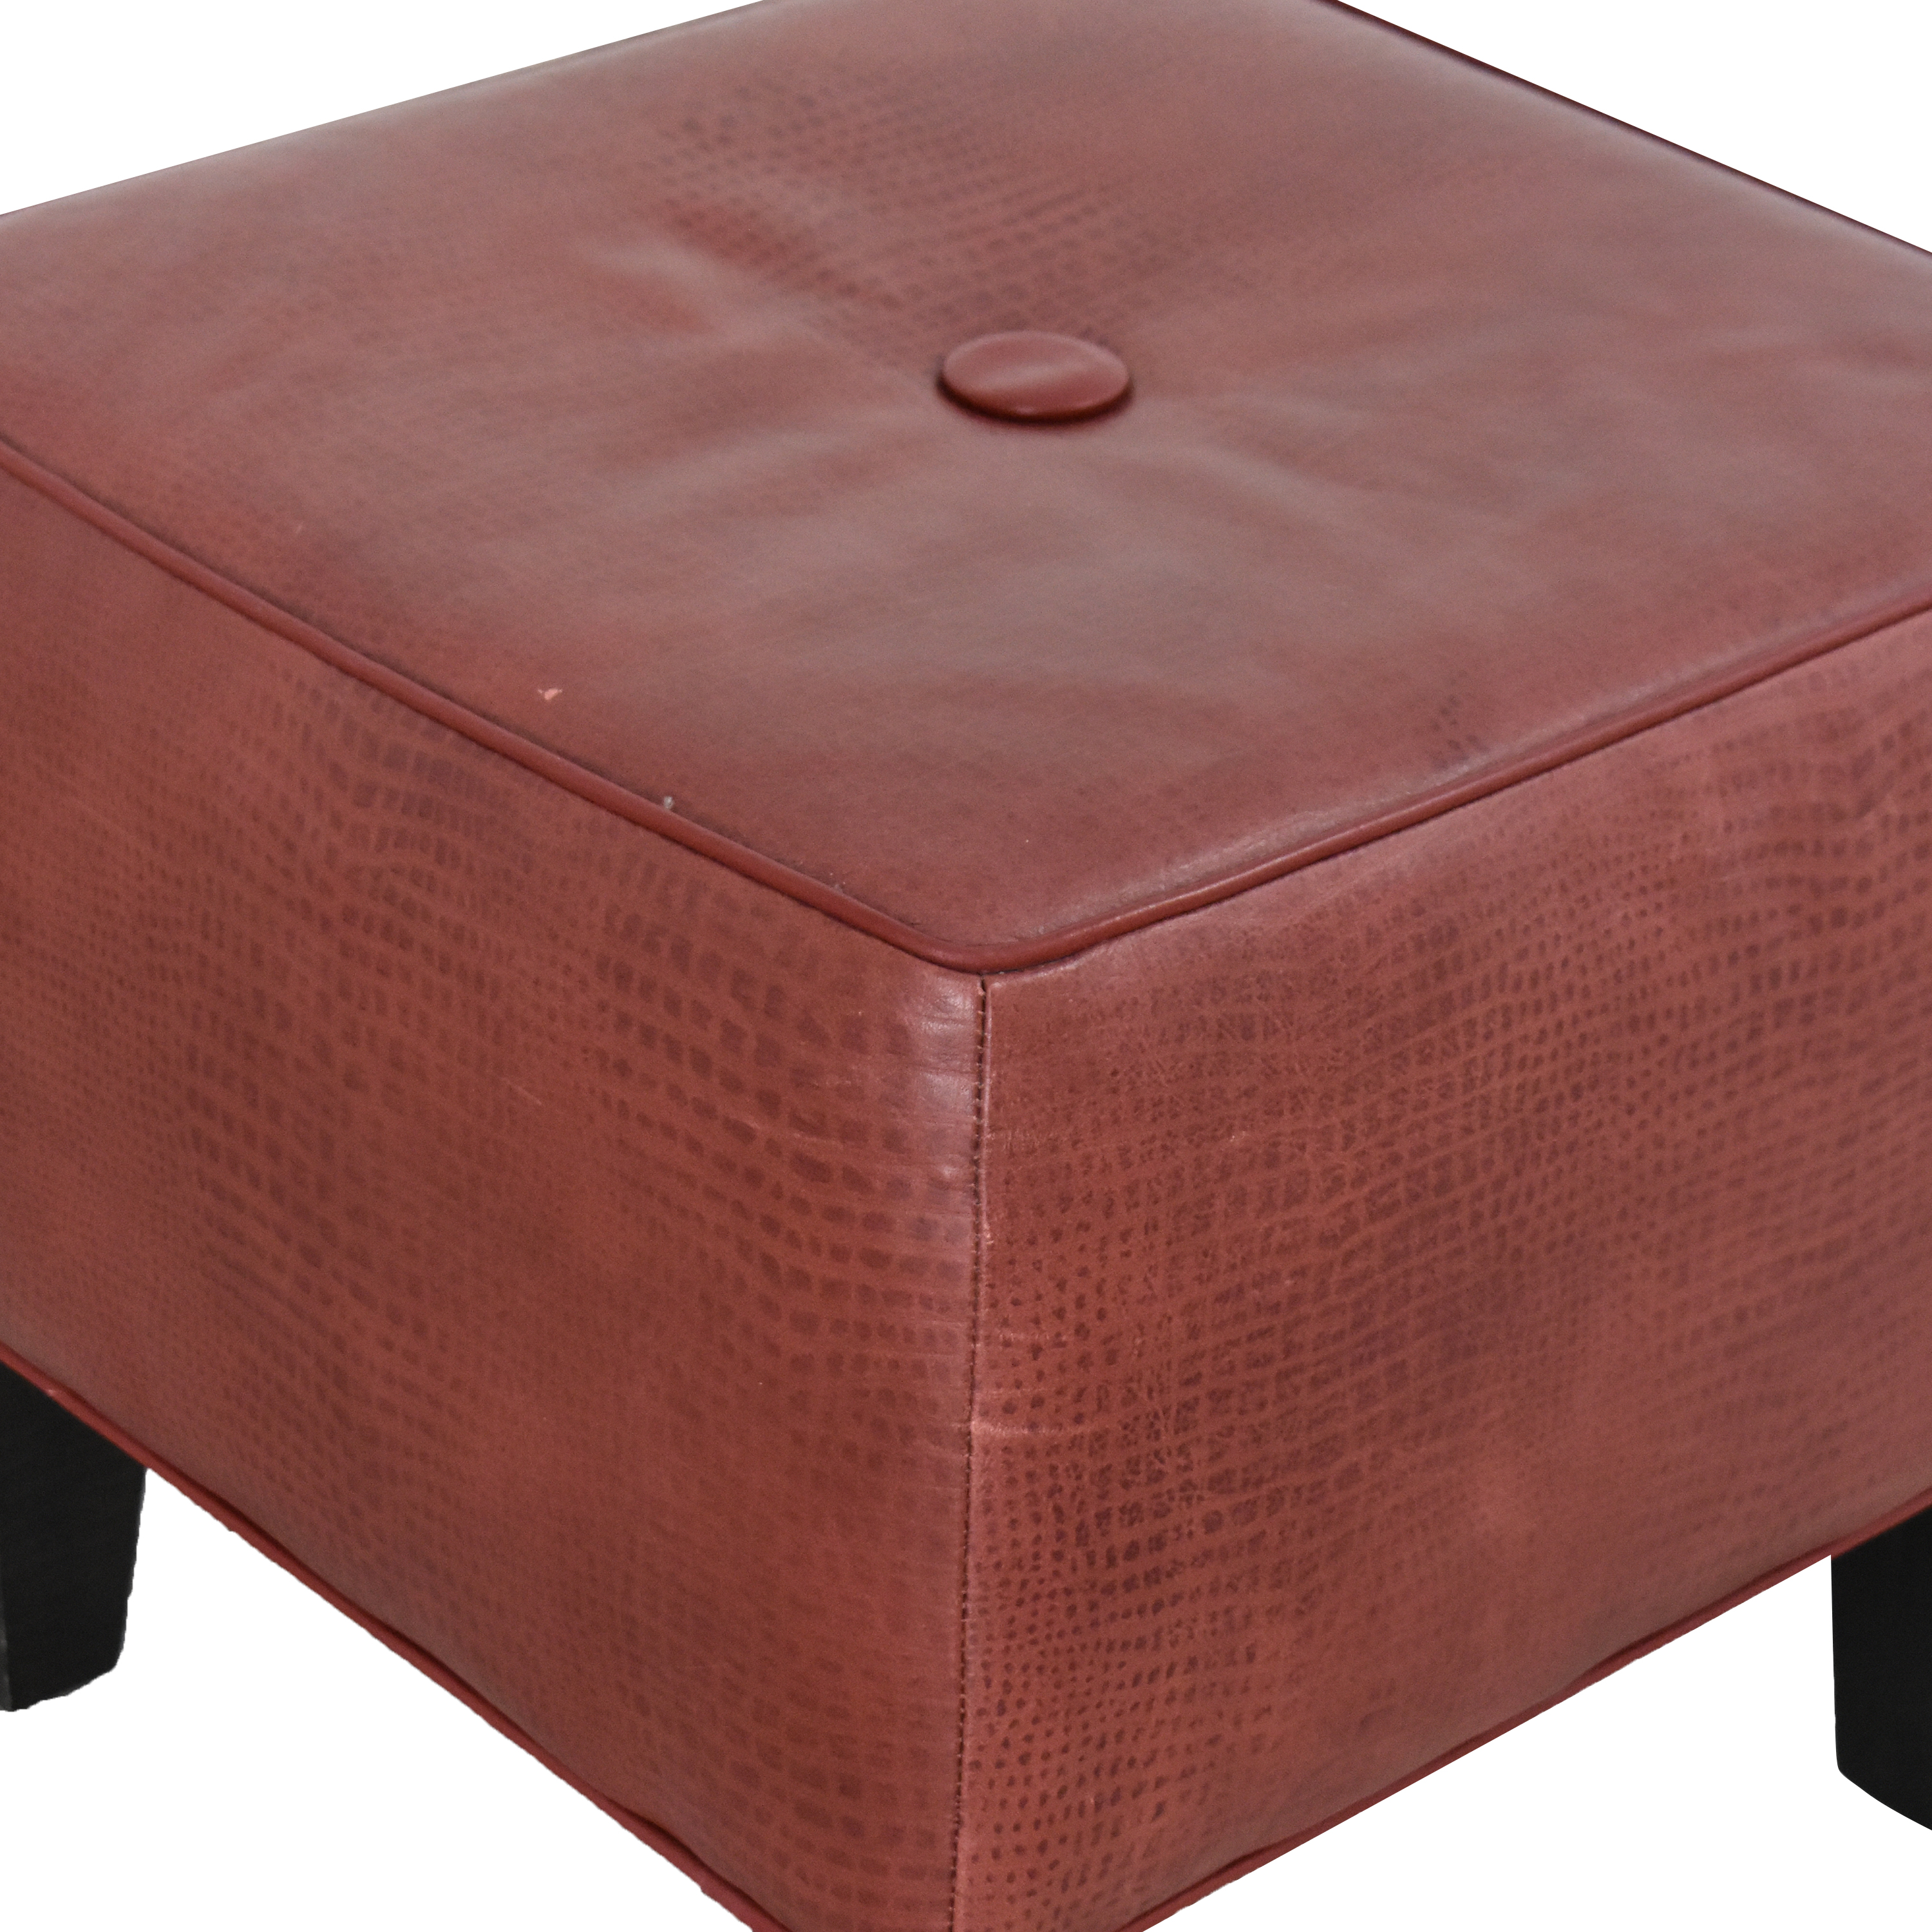 Ethan Allen Ethan Allen Square Ottoman used